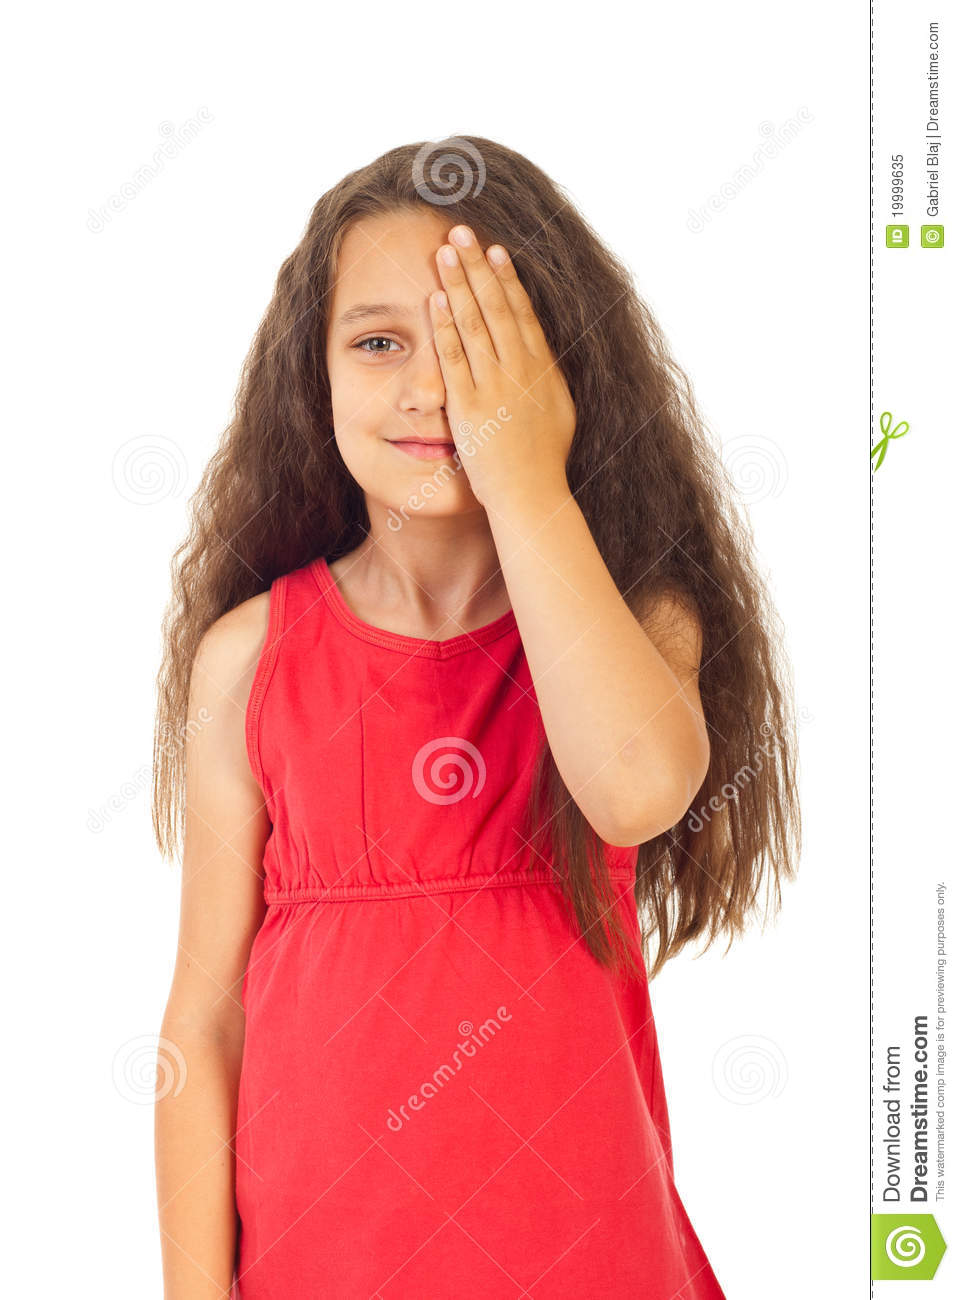 Girl Covering One Eye Royalty Free Stock Photo Image